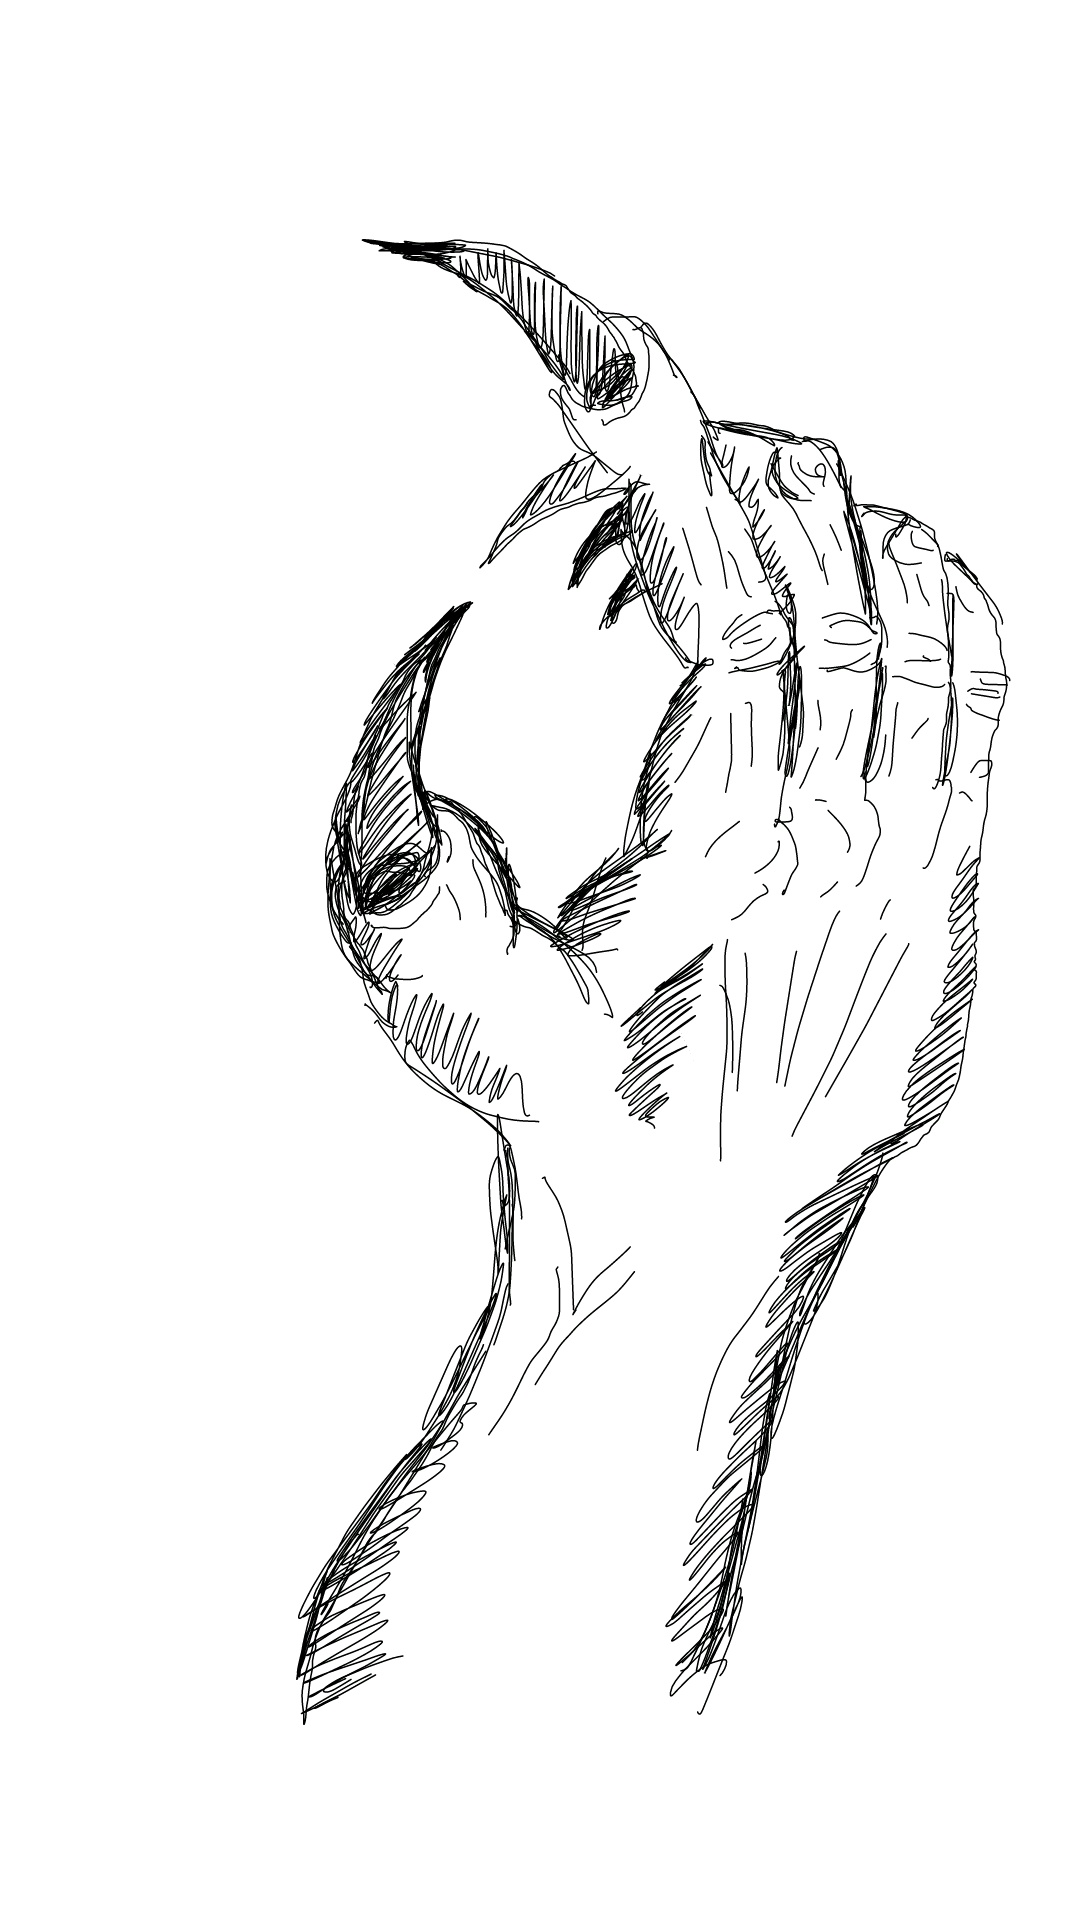 Demon Hand Png, png collections at sccpre.cat.